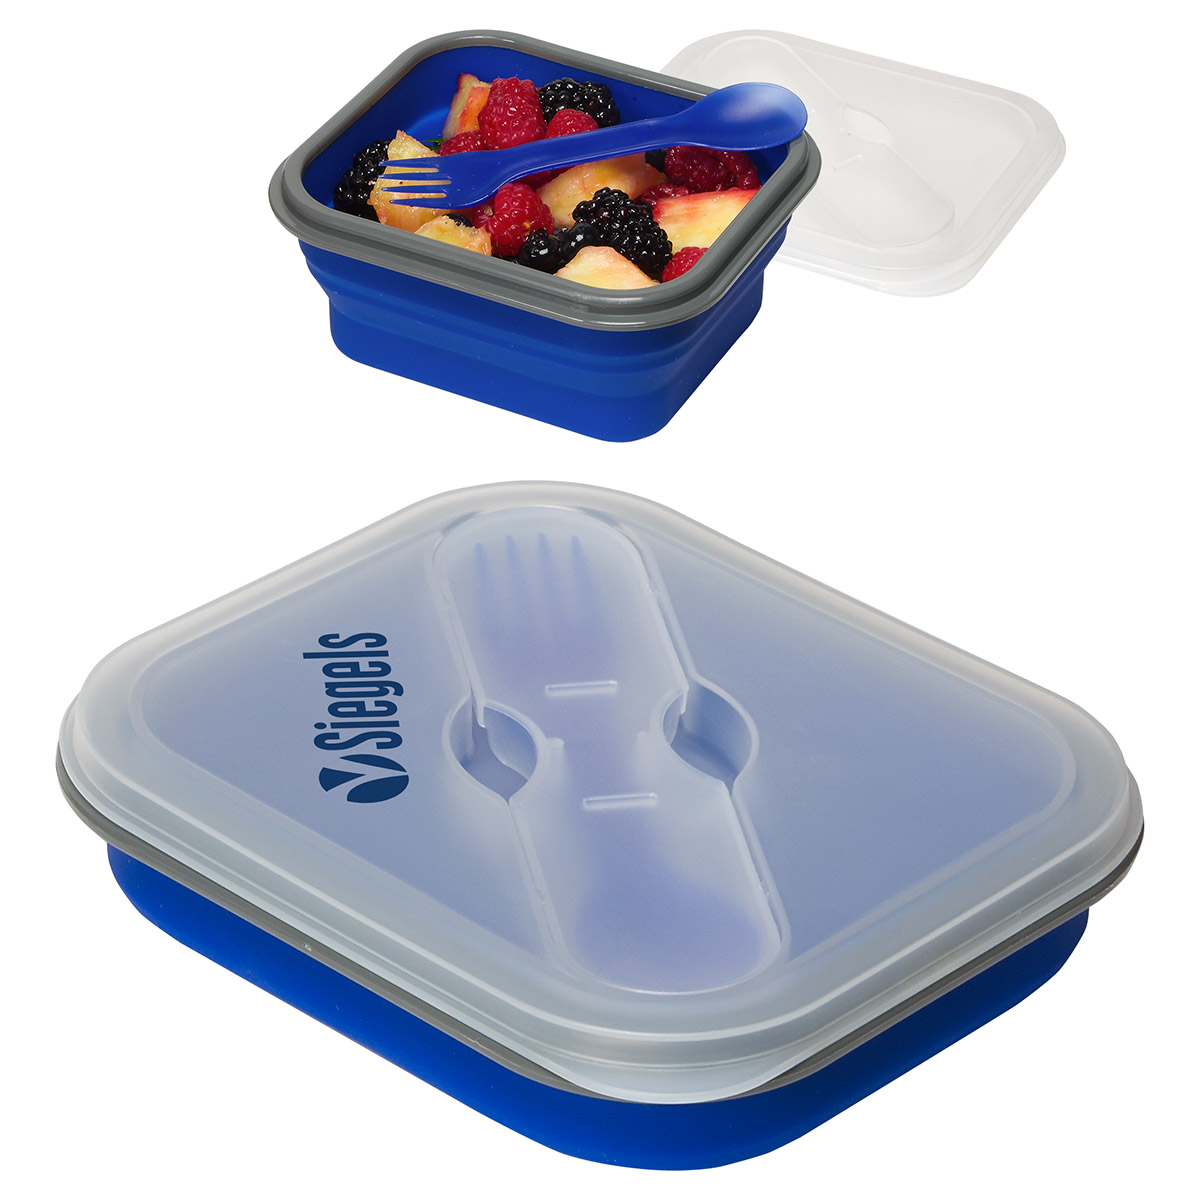 Collapsible Silicone Lunch Box, WKA-CL16 - 1 Colour Imprint